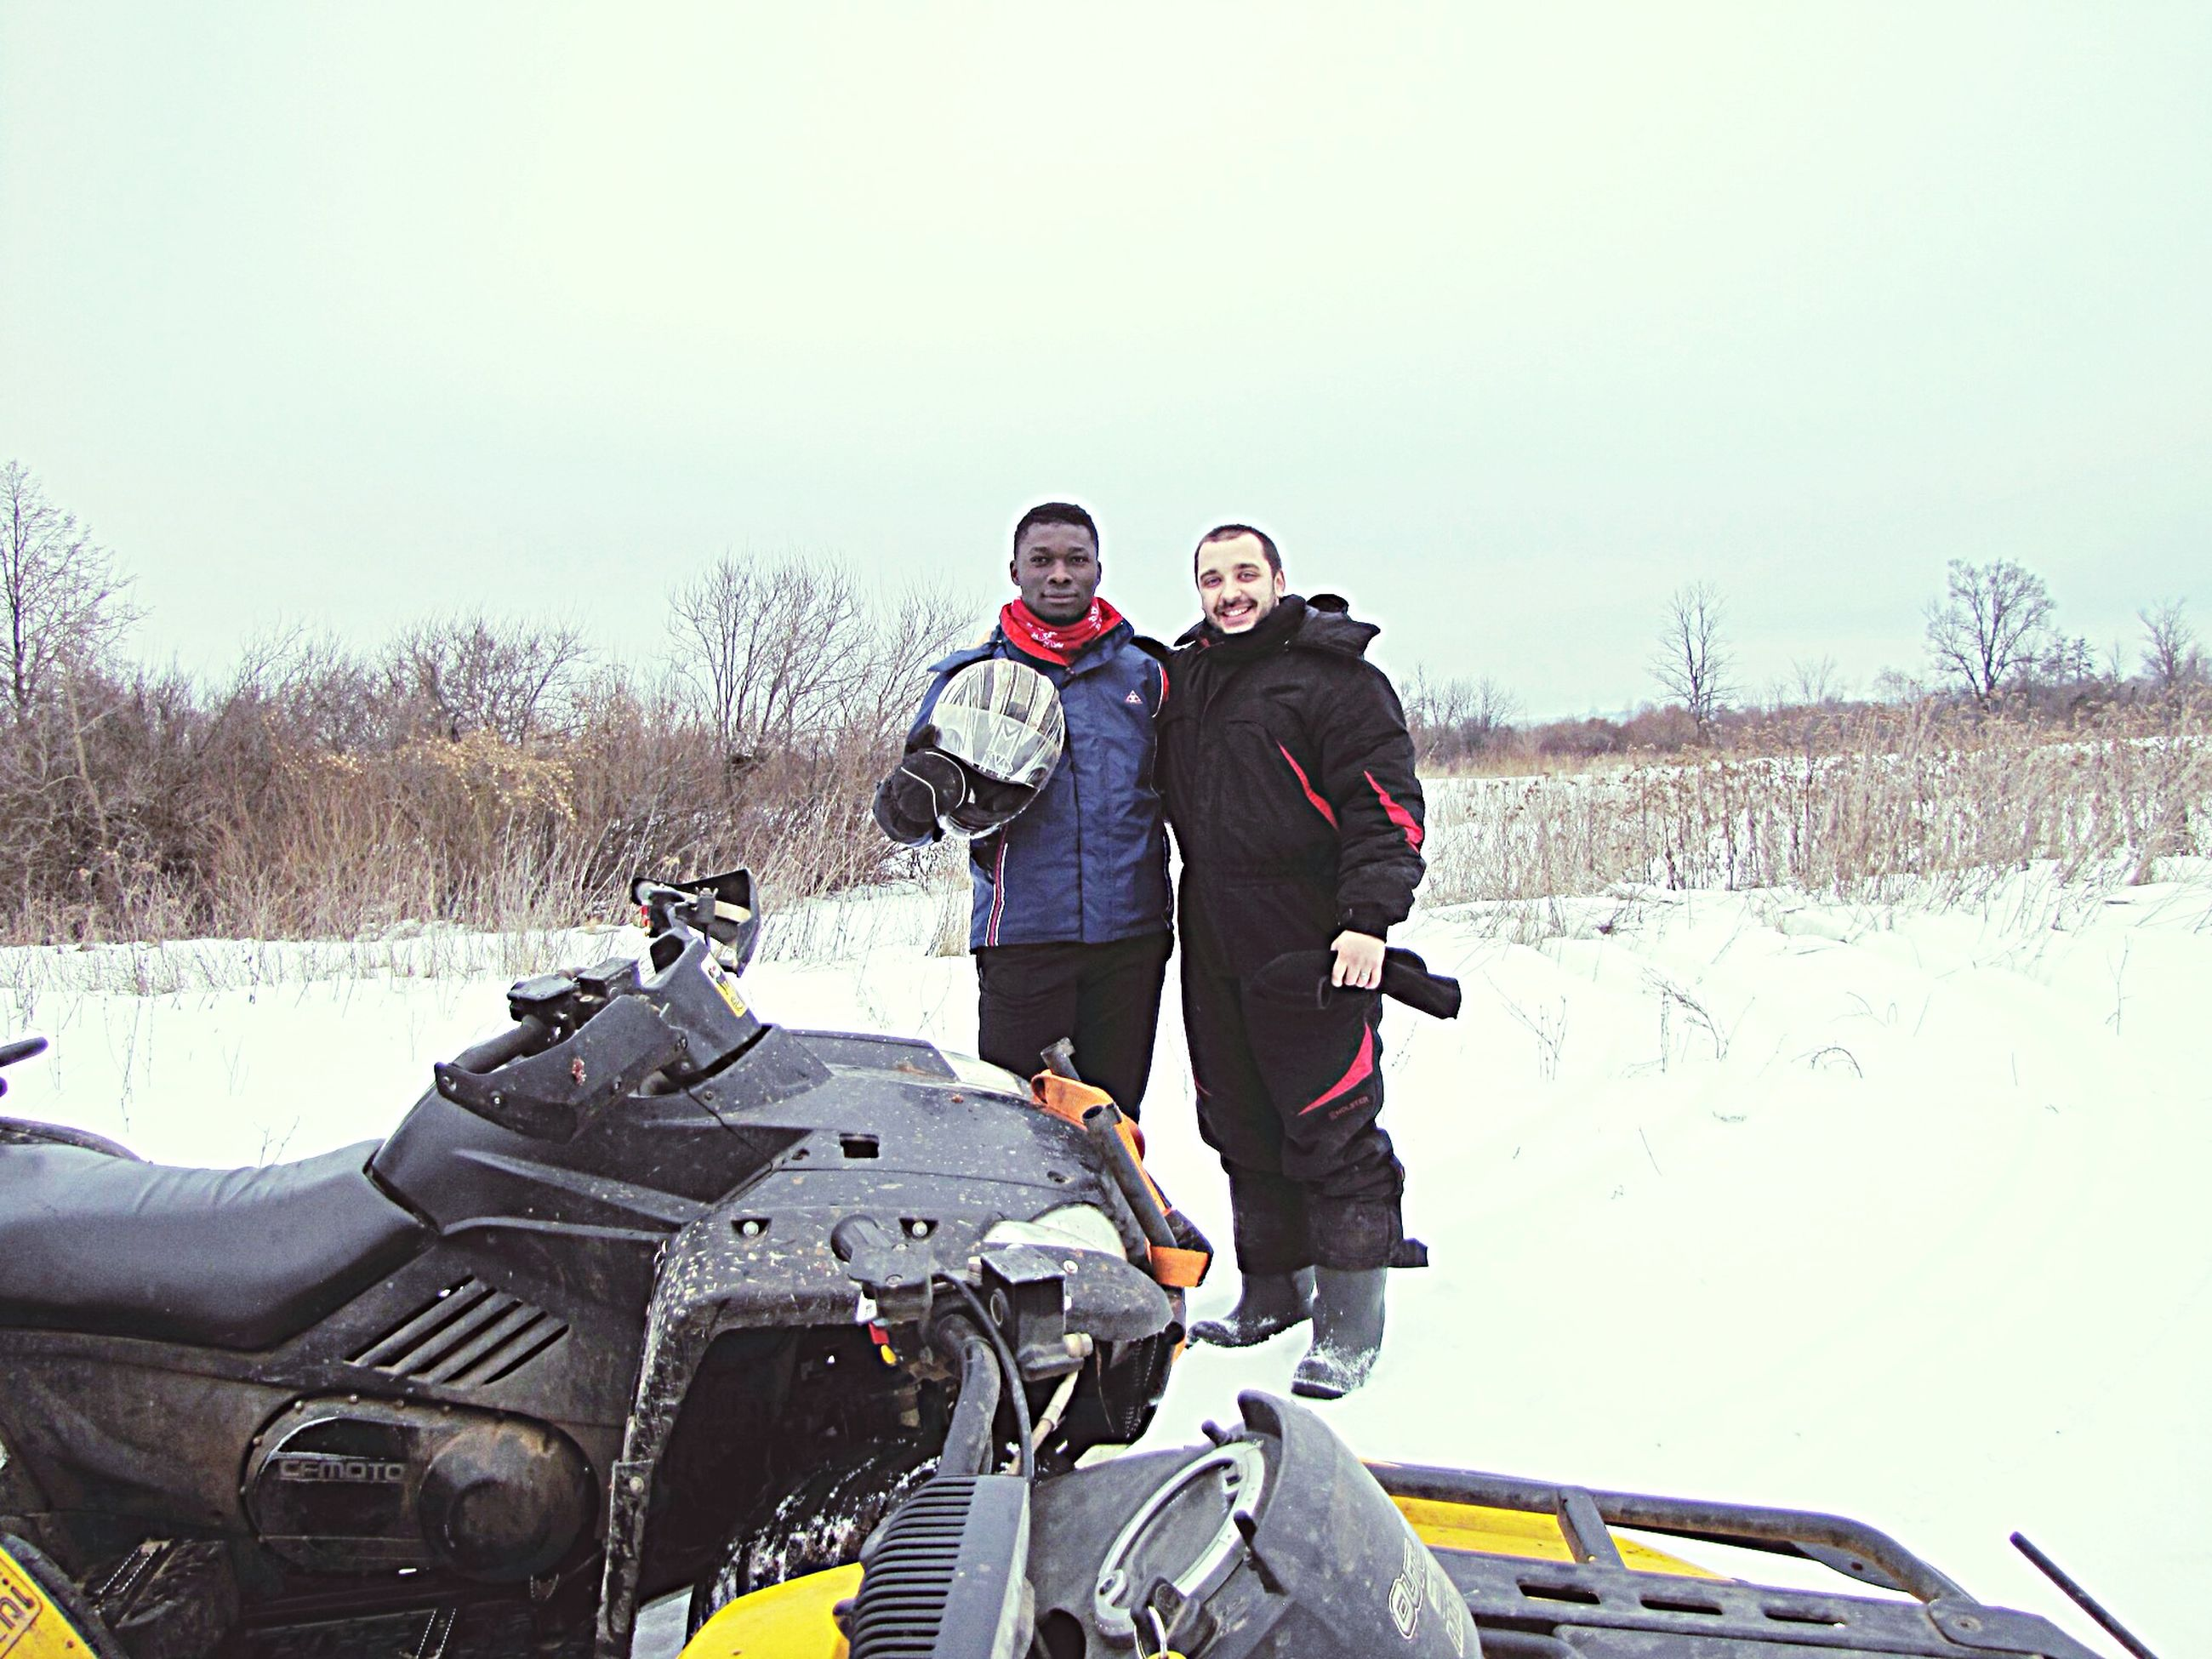 lifestyles, leisure activity, clear sky, casual clothing, transportation, winter, mode of transport, land vehicle, person, young men, men, snow, cold temperature, copy space, young adult, standing, warm clothing, full length